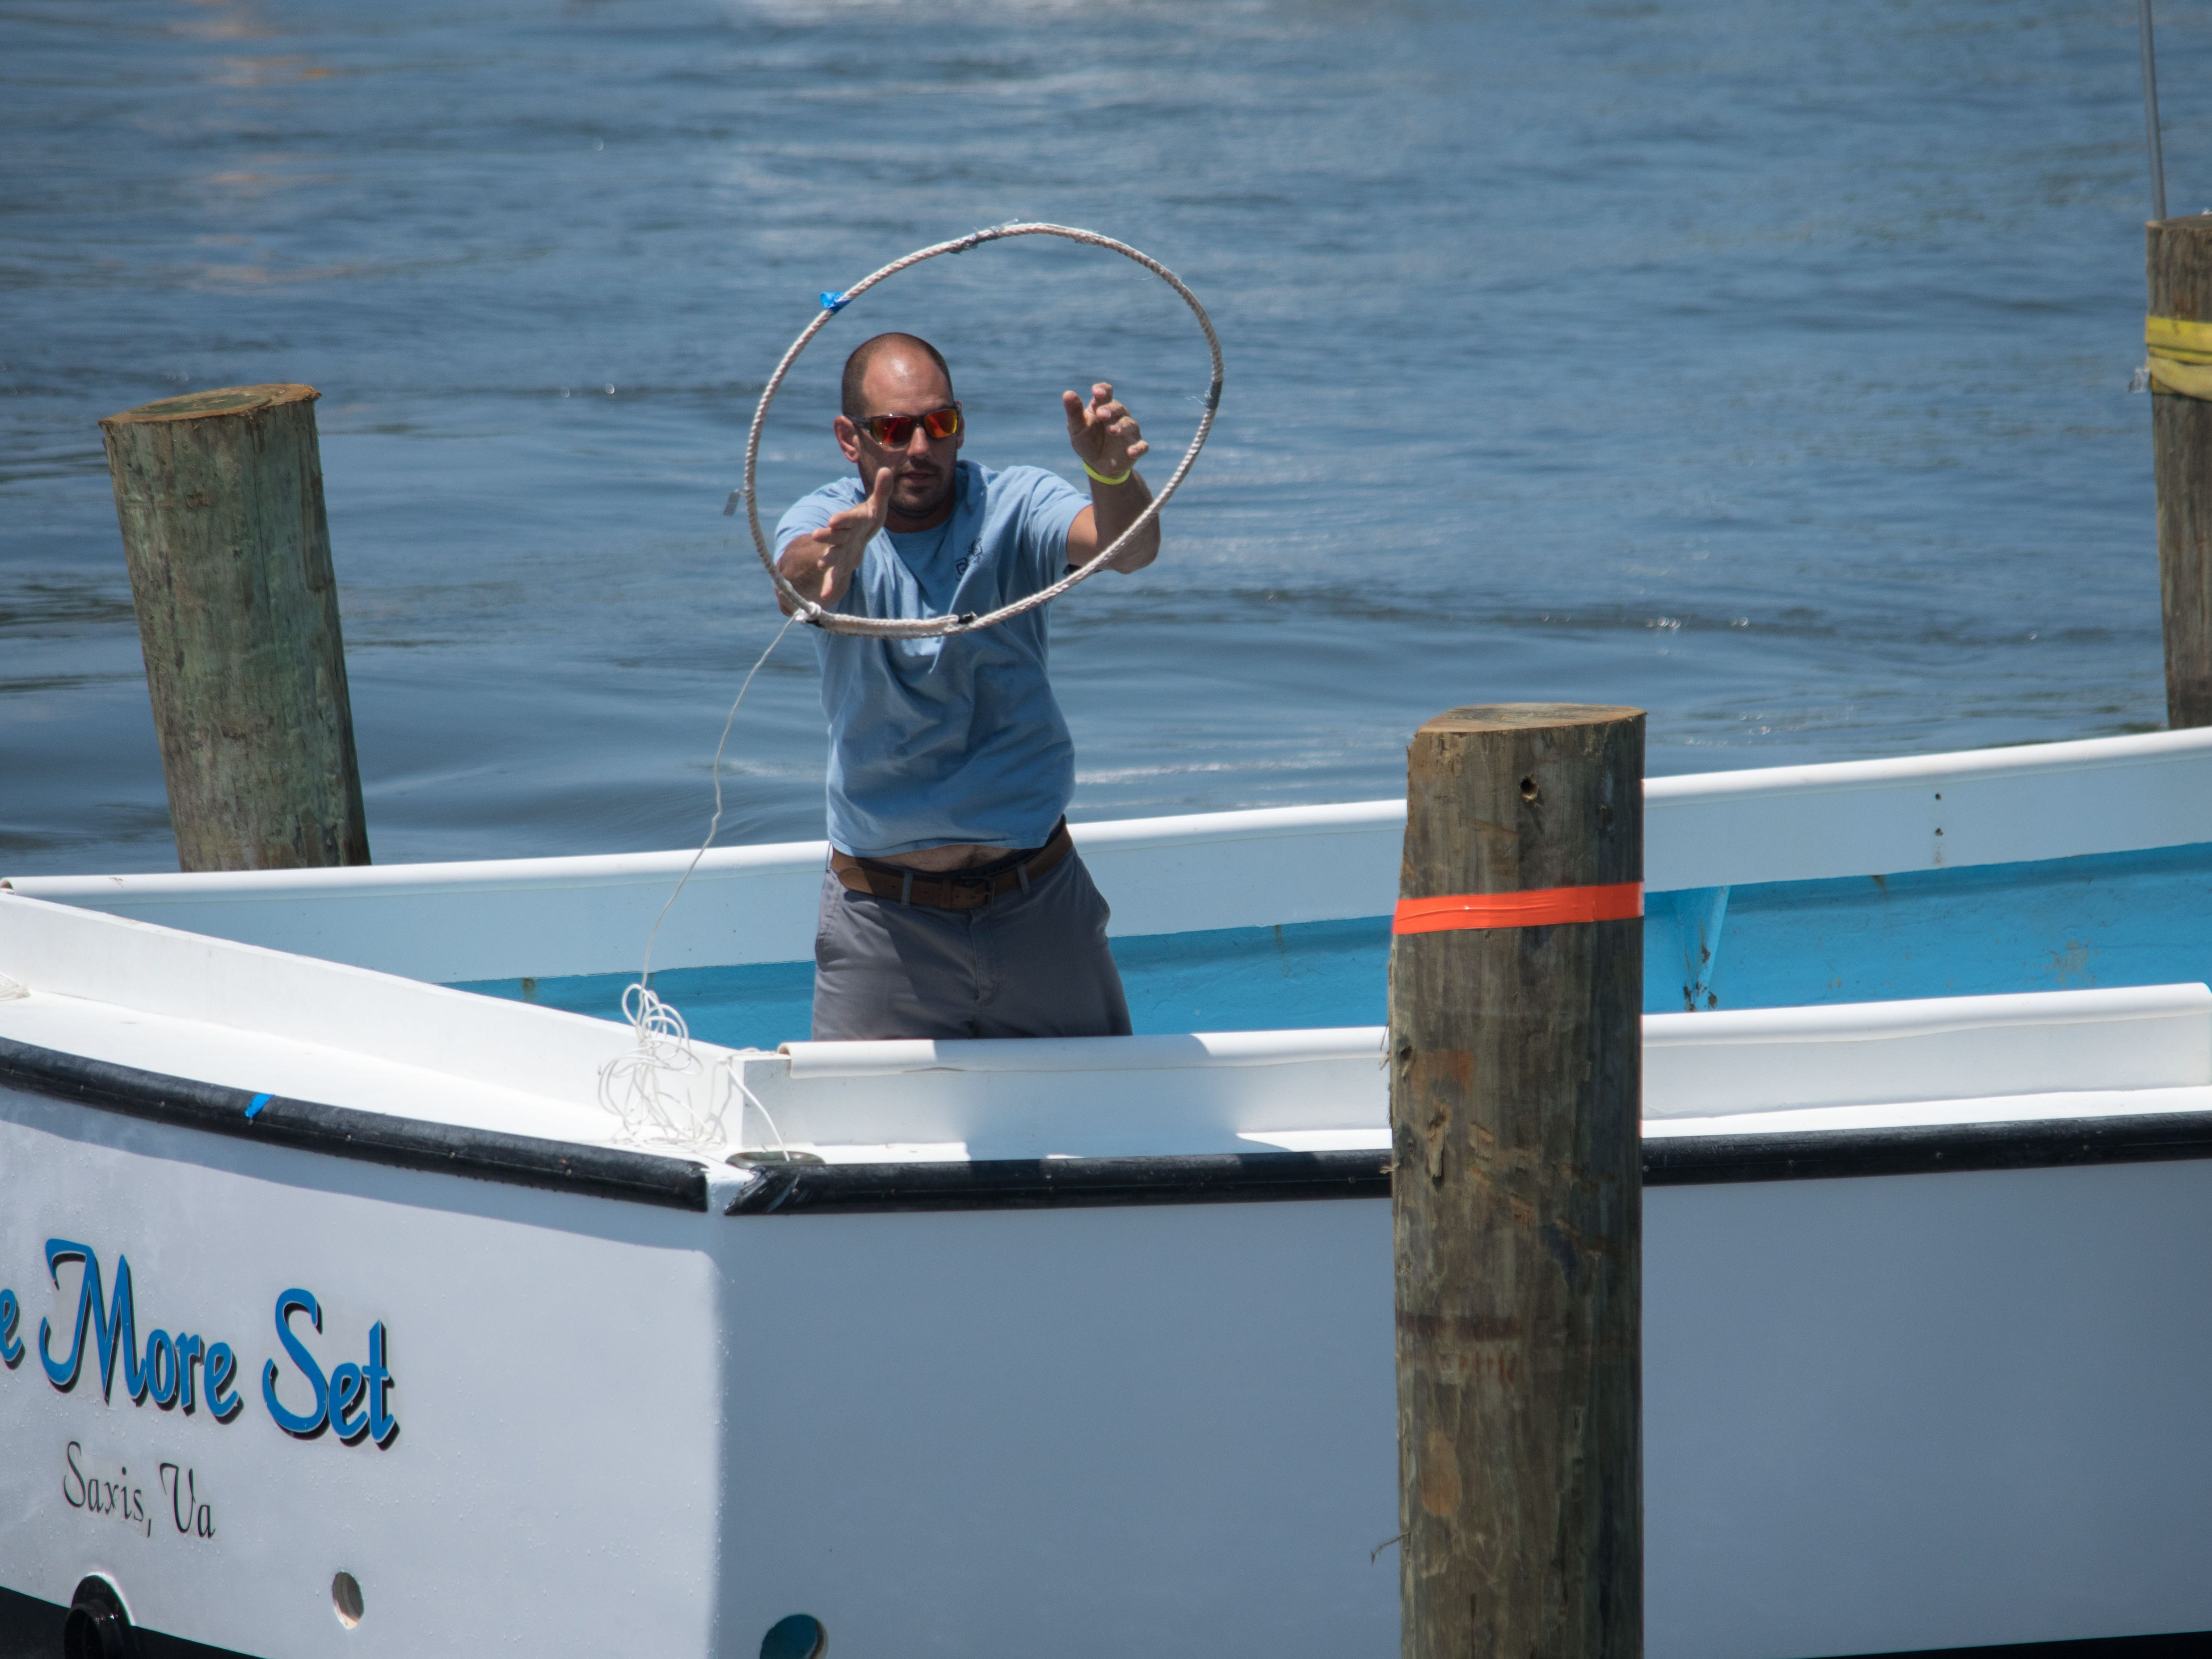 Donnie Porter, captain of the One More Set, tosses a piling hoop during the Boat Docking Contest on Sunday, Aug 5.